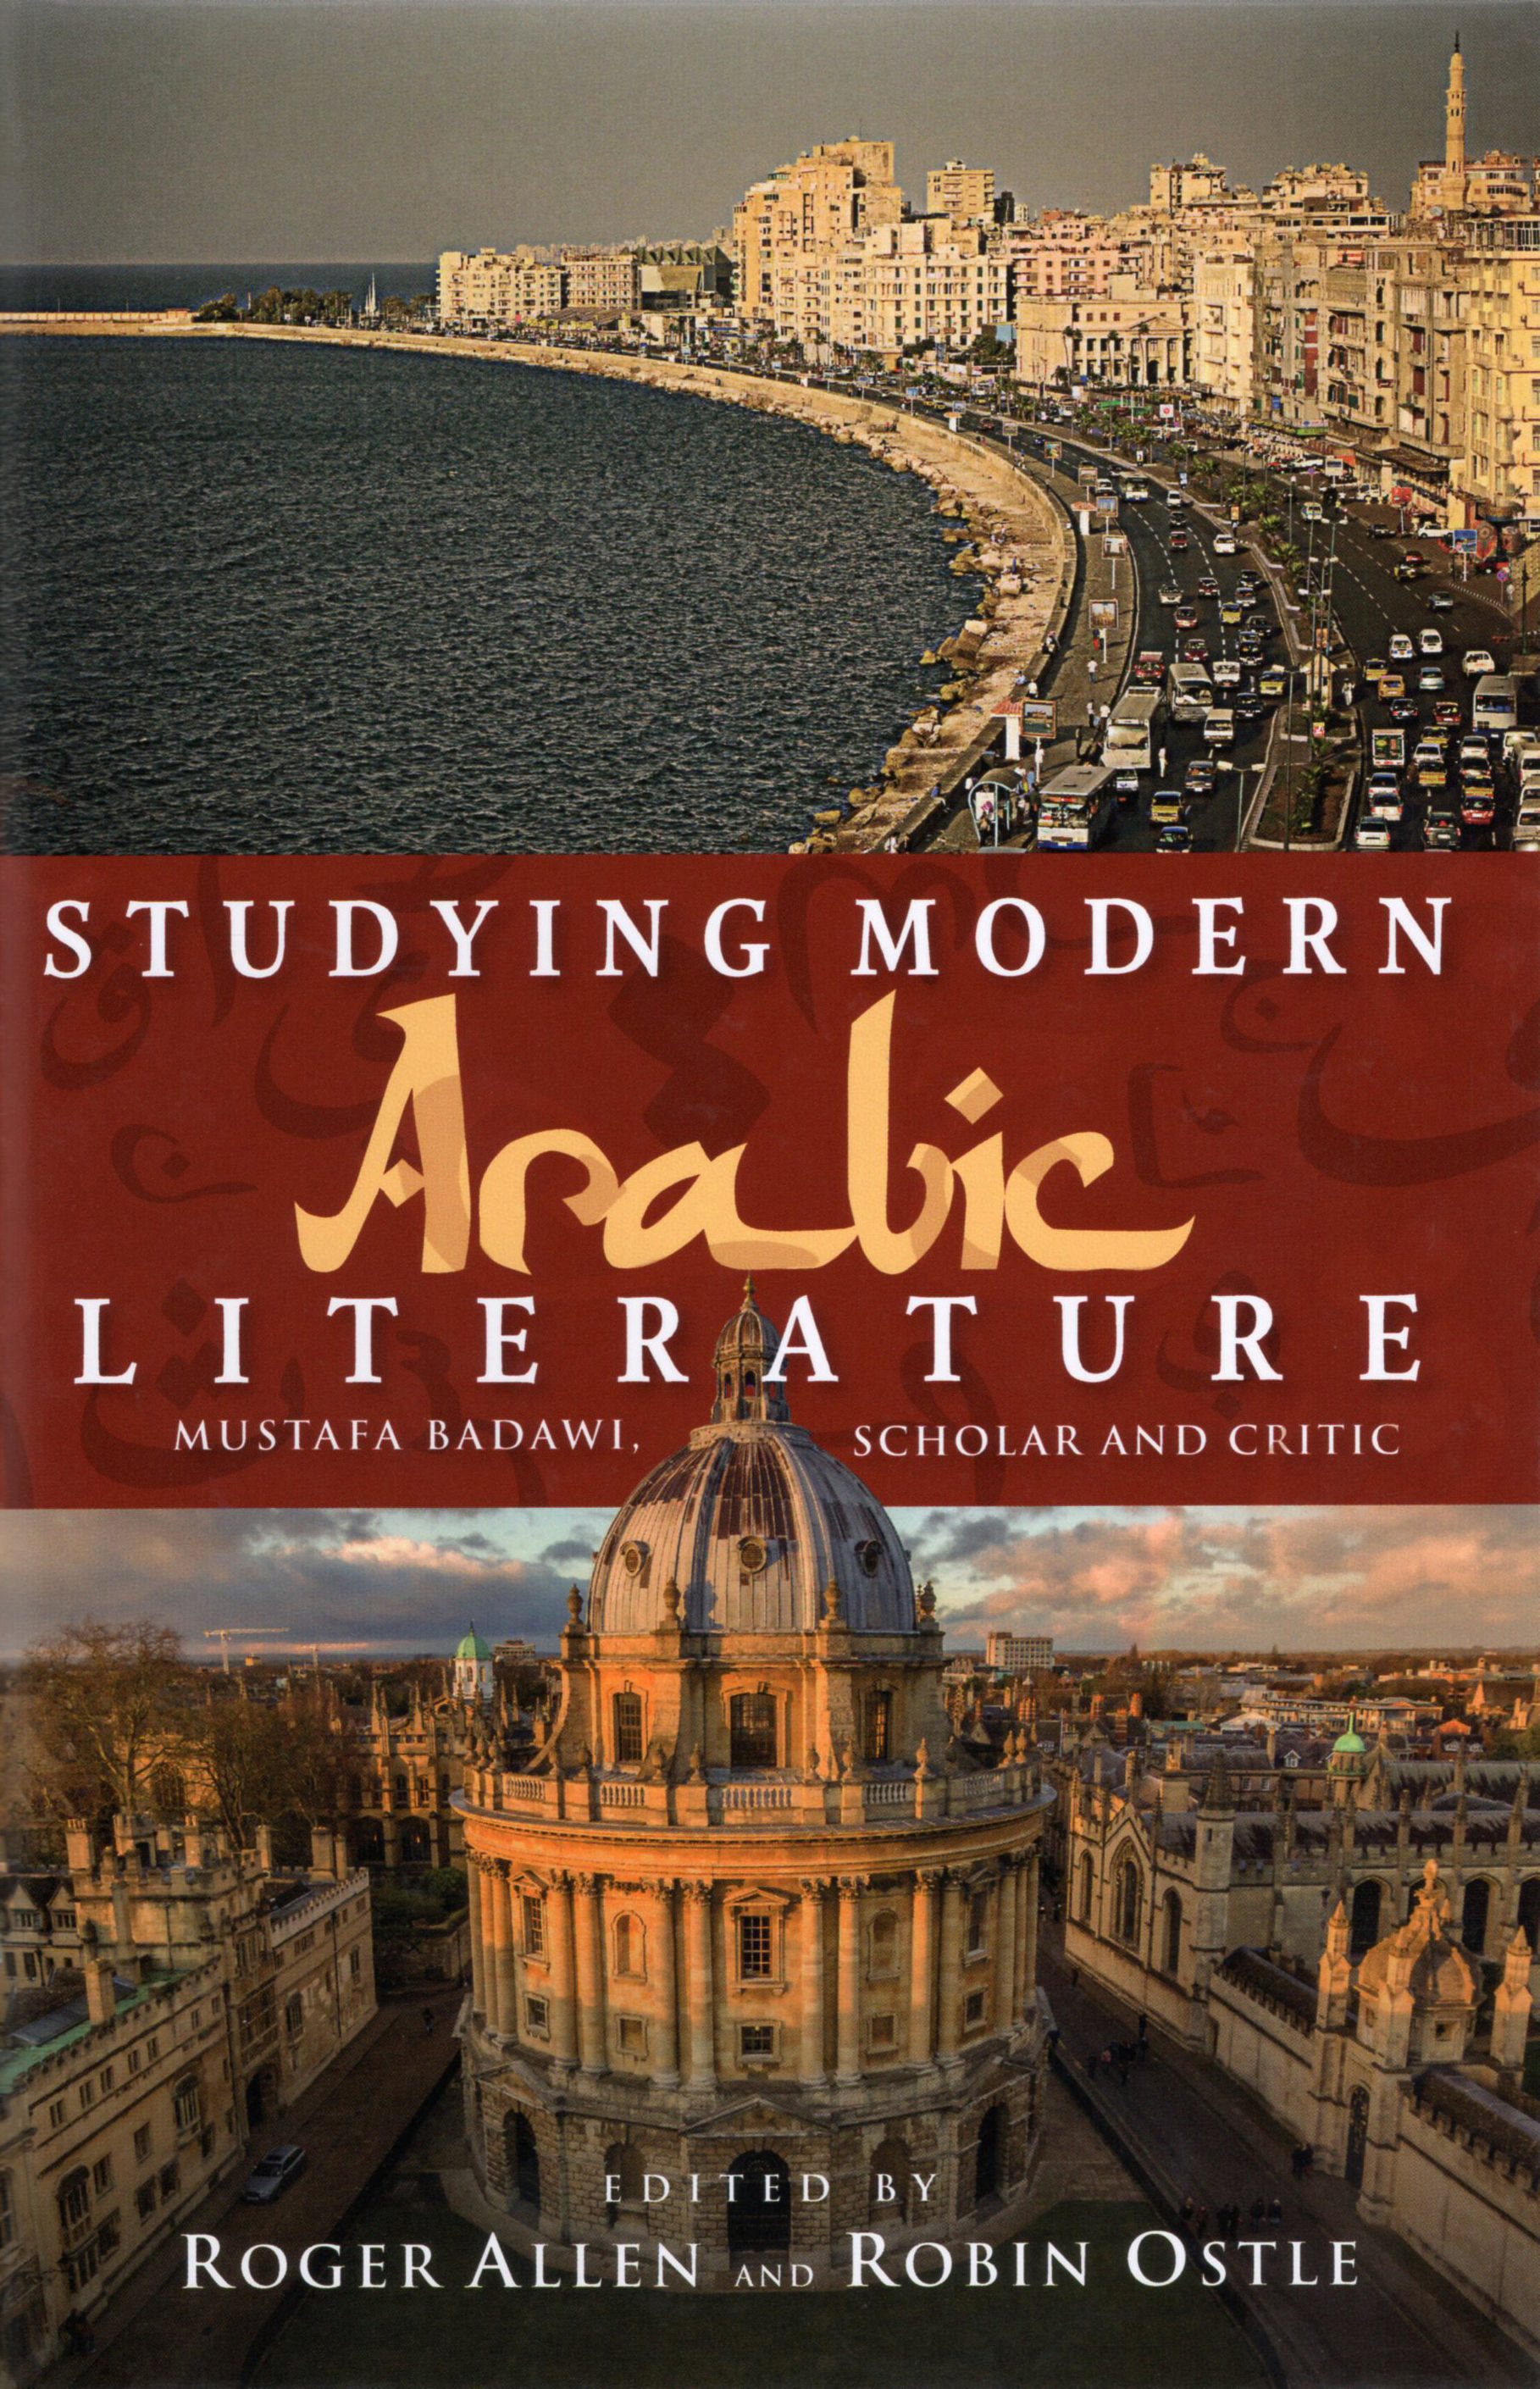 Image of Studying Modern Arabic Literature: Mustafa Badawi, Scholar and Critic